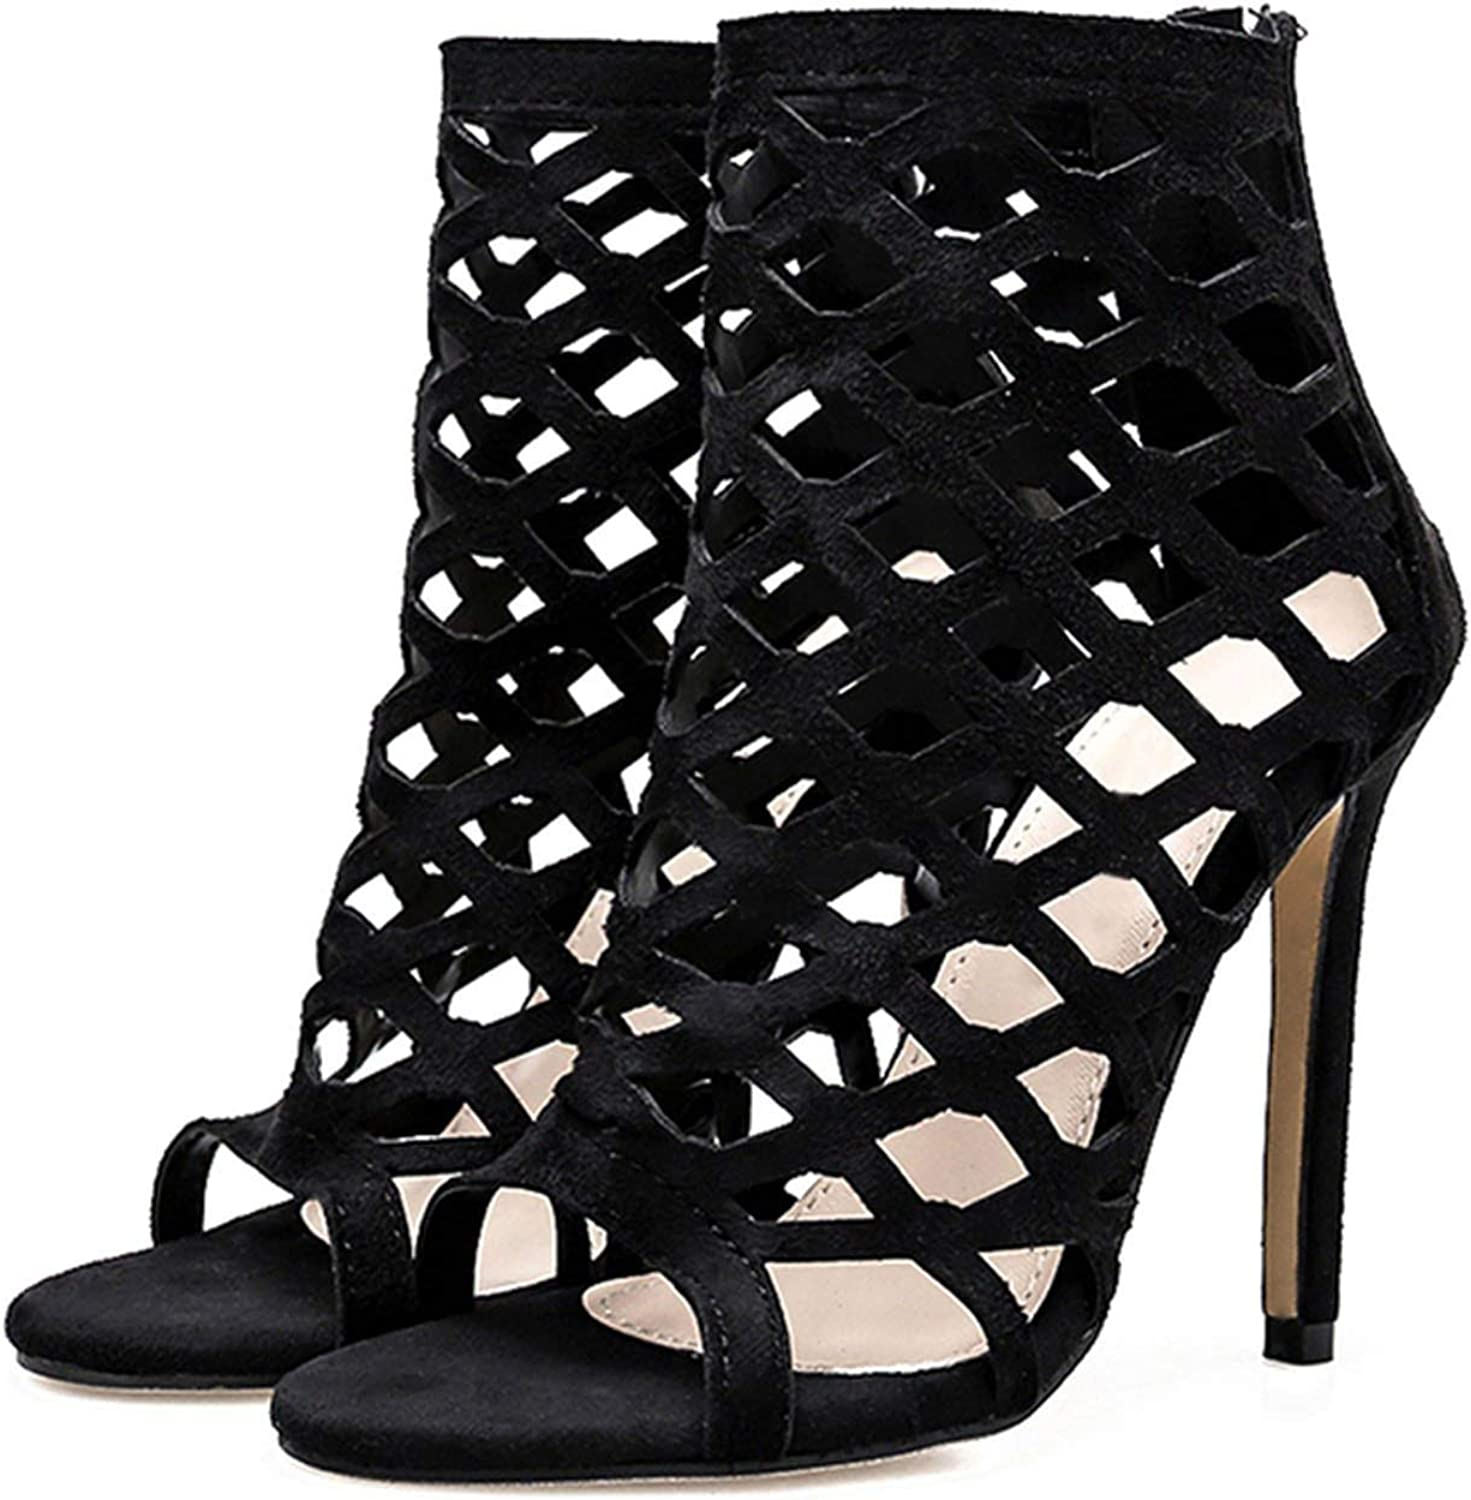 Women shoes High Heeled Open Toe Black Party shoes Sandals Hollow Out Thin Heels Beach Evening Pumps